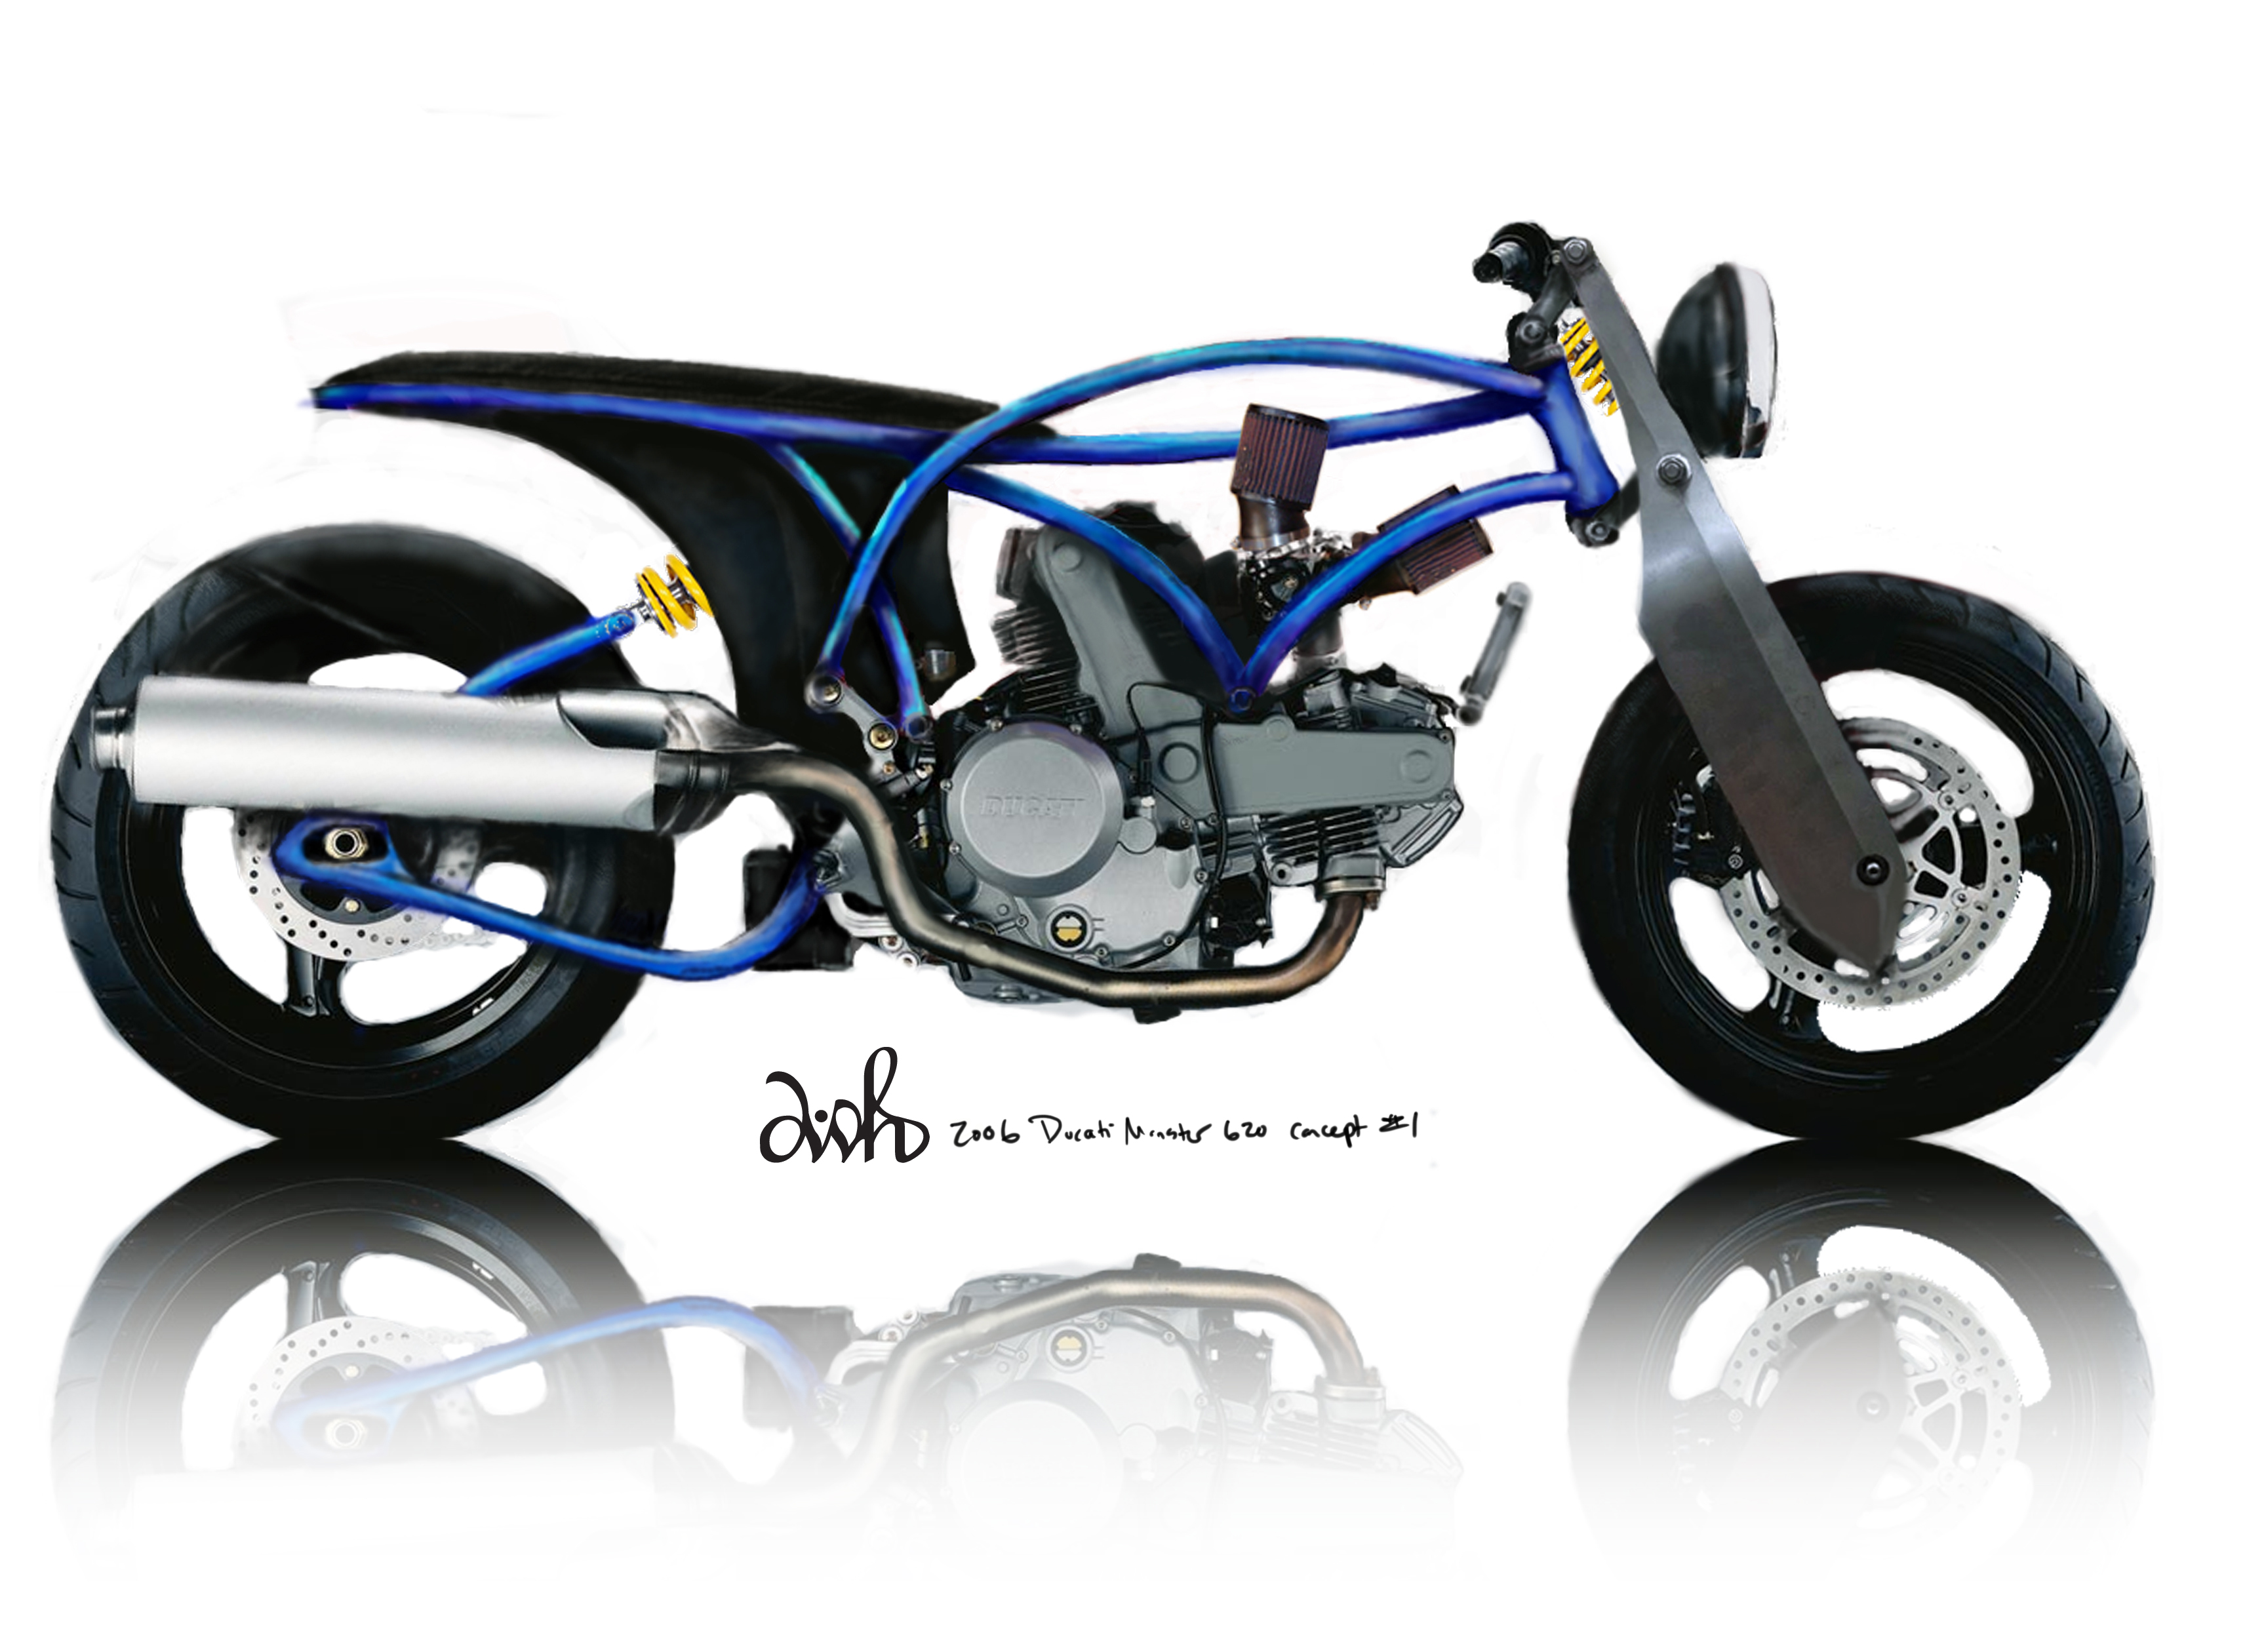 duc 620 concept right raw